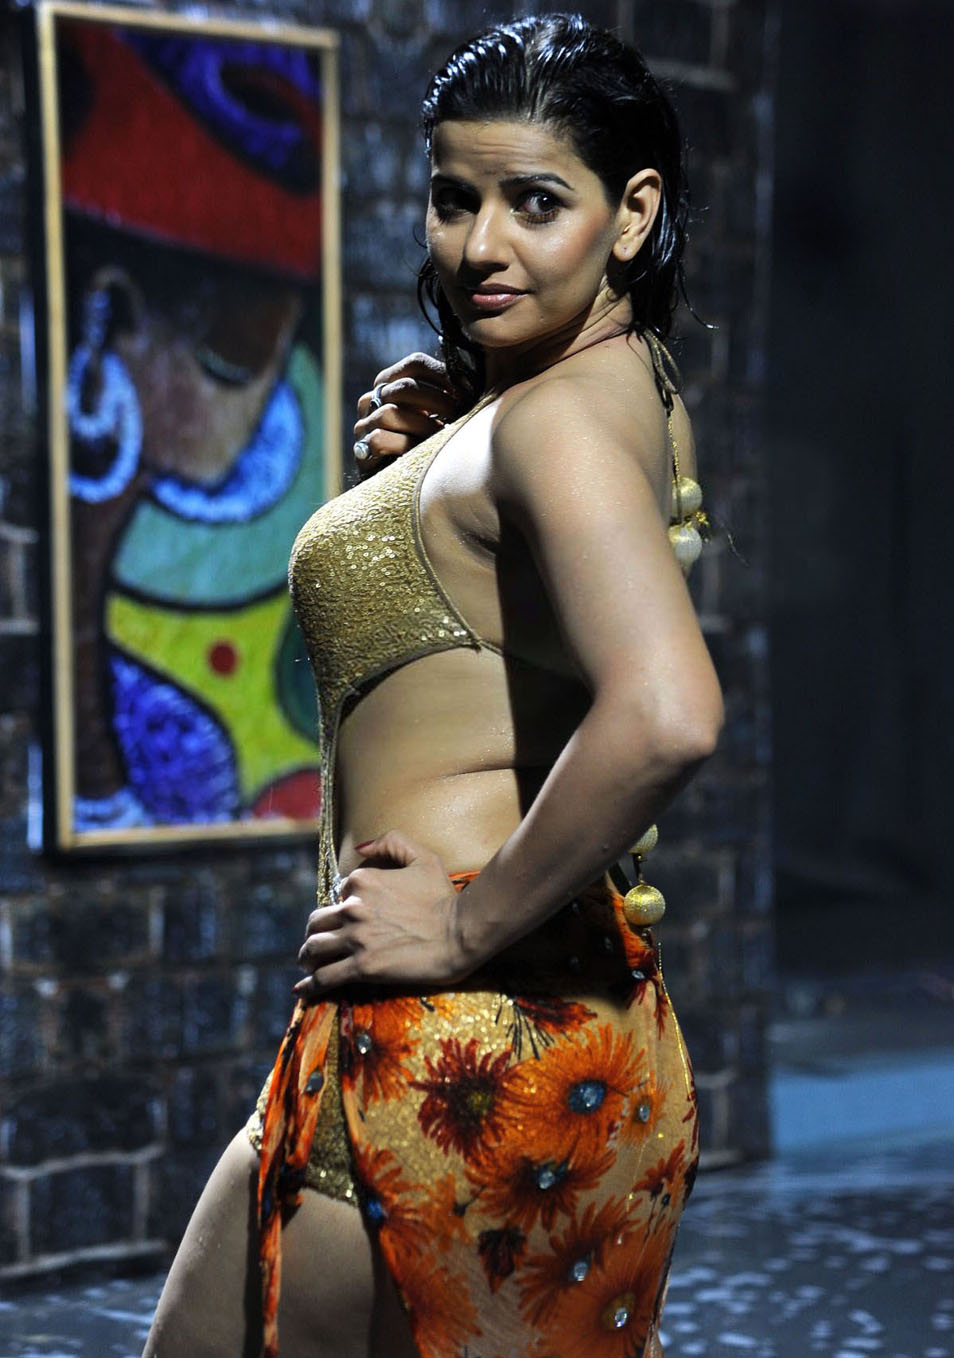 Indian actress heroin anushka shetty nude leaked photos without dress big tits - 1 6